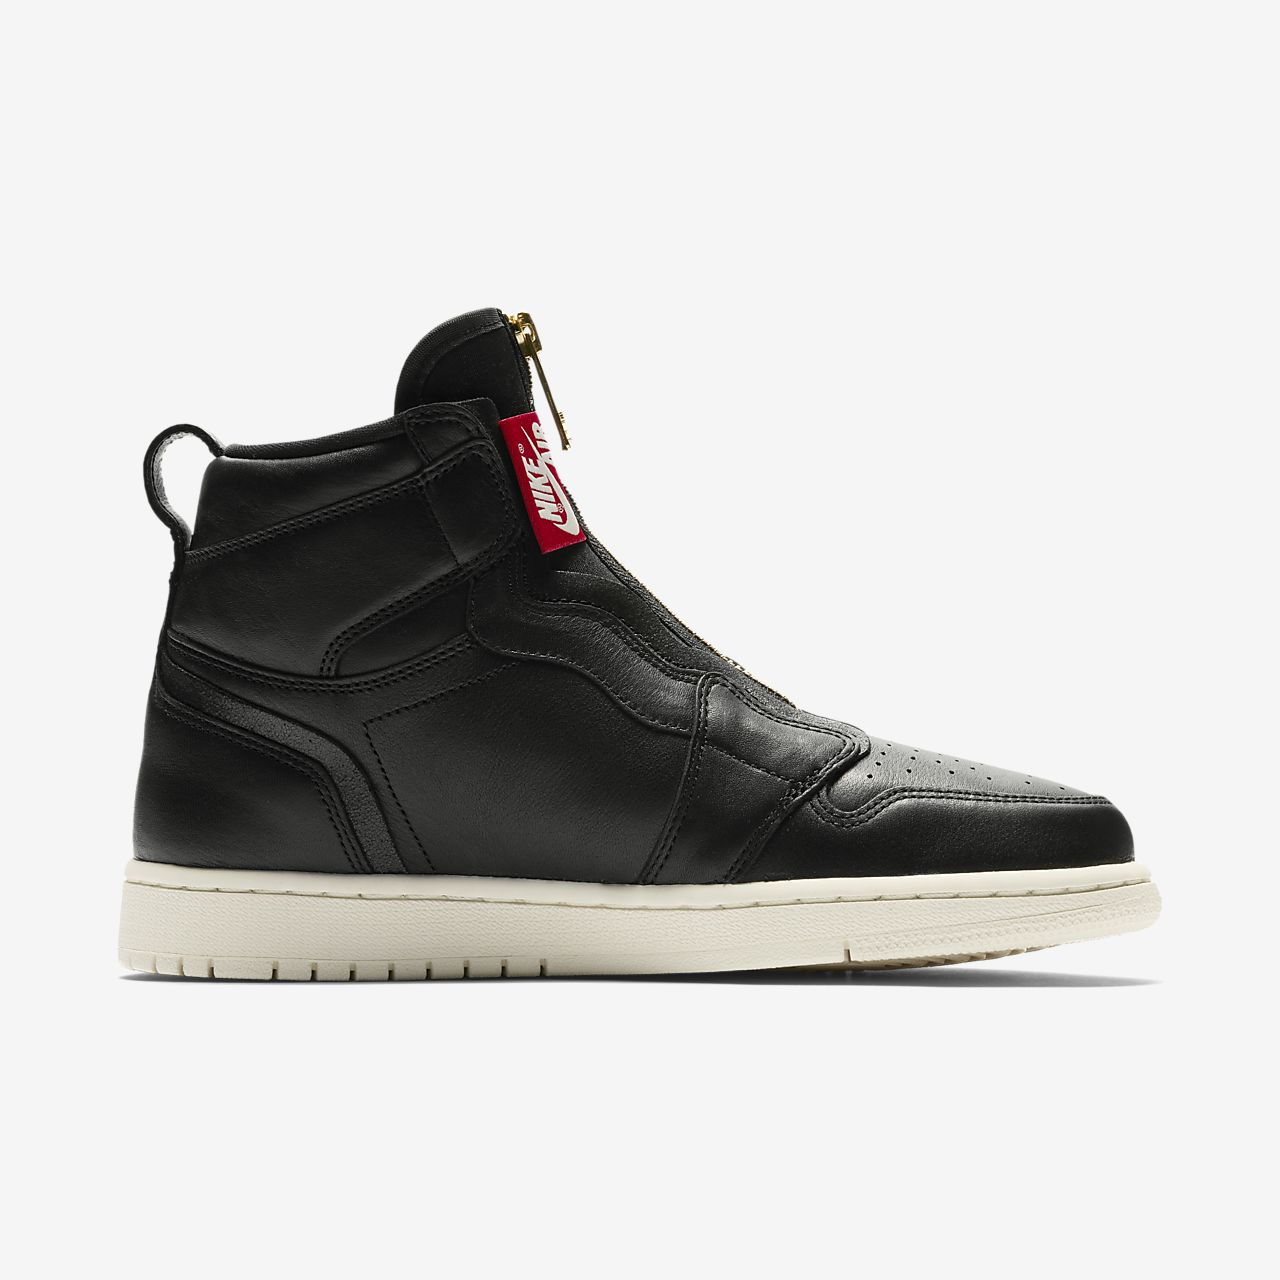 scarpa air jordan 1 high zip nerouniversity redsail aq3742 016